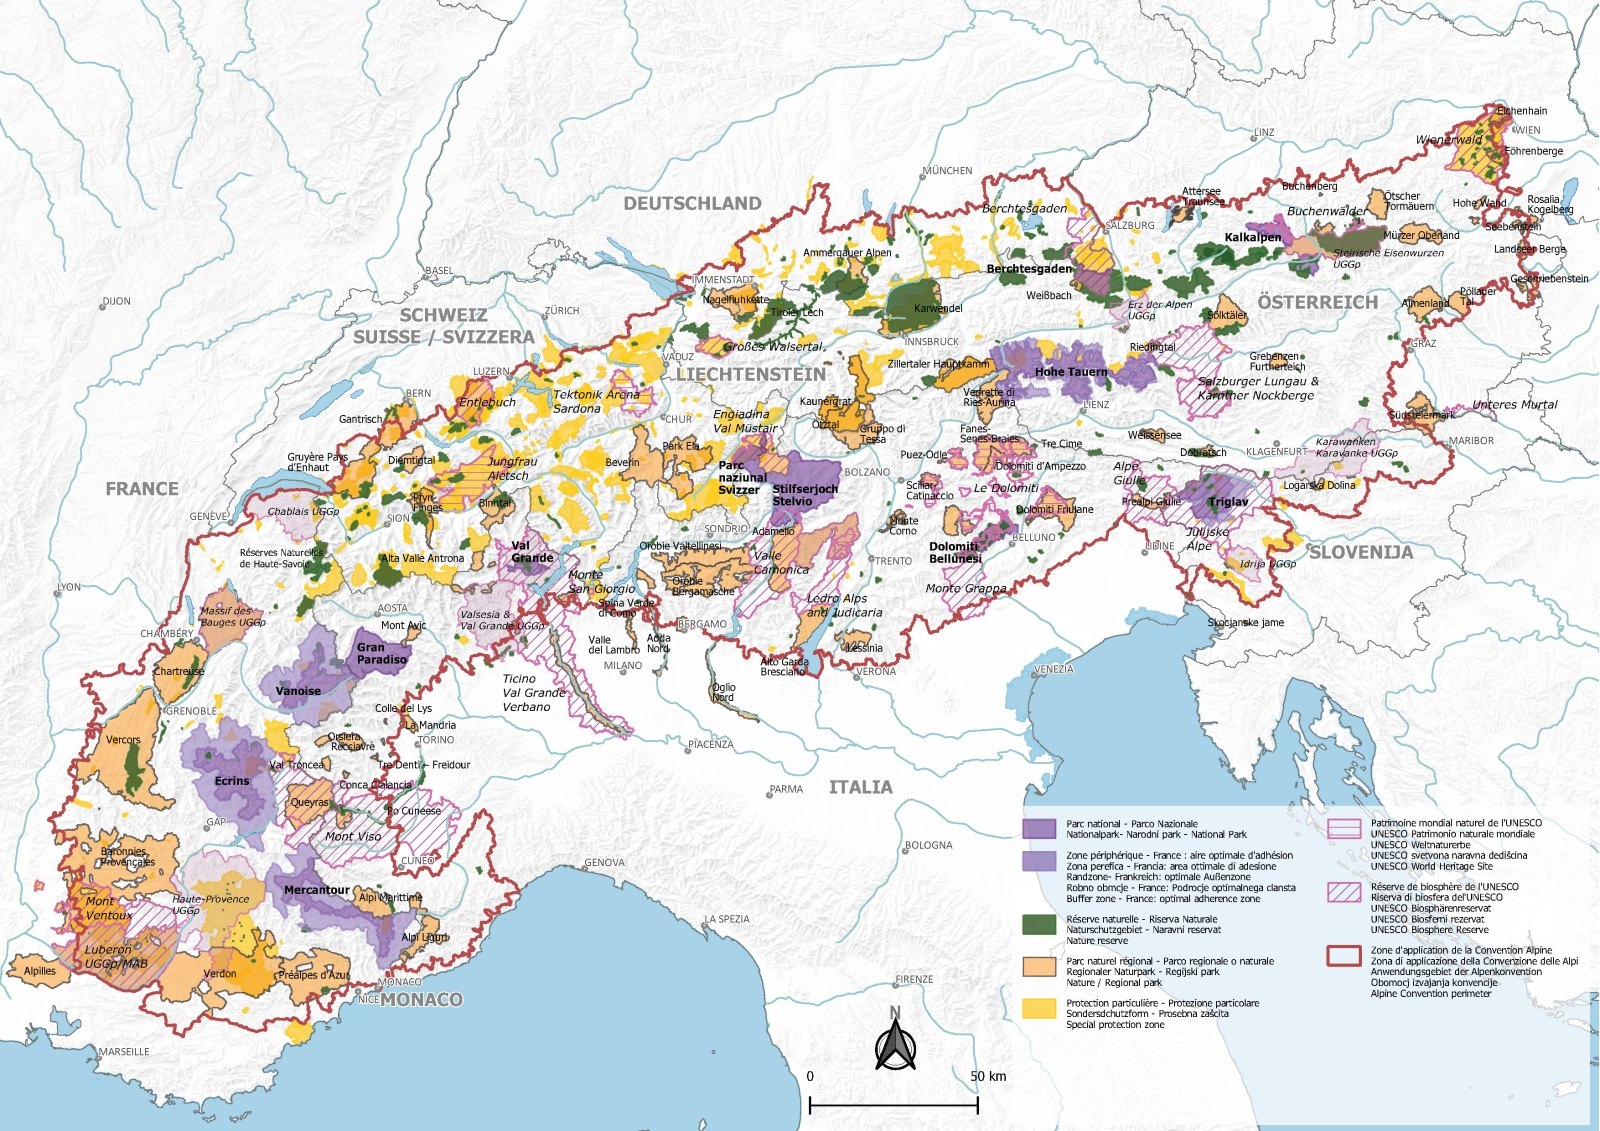 Map of the Alpine protected areas